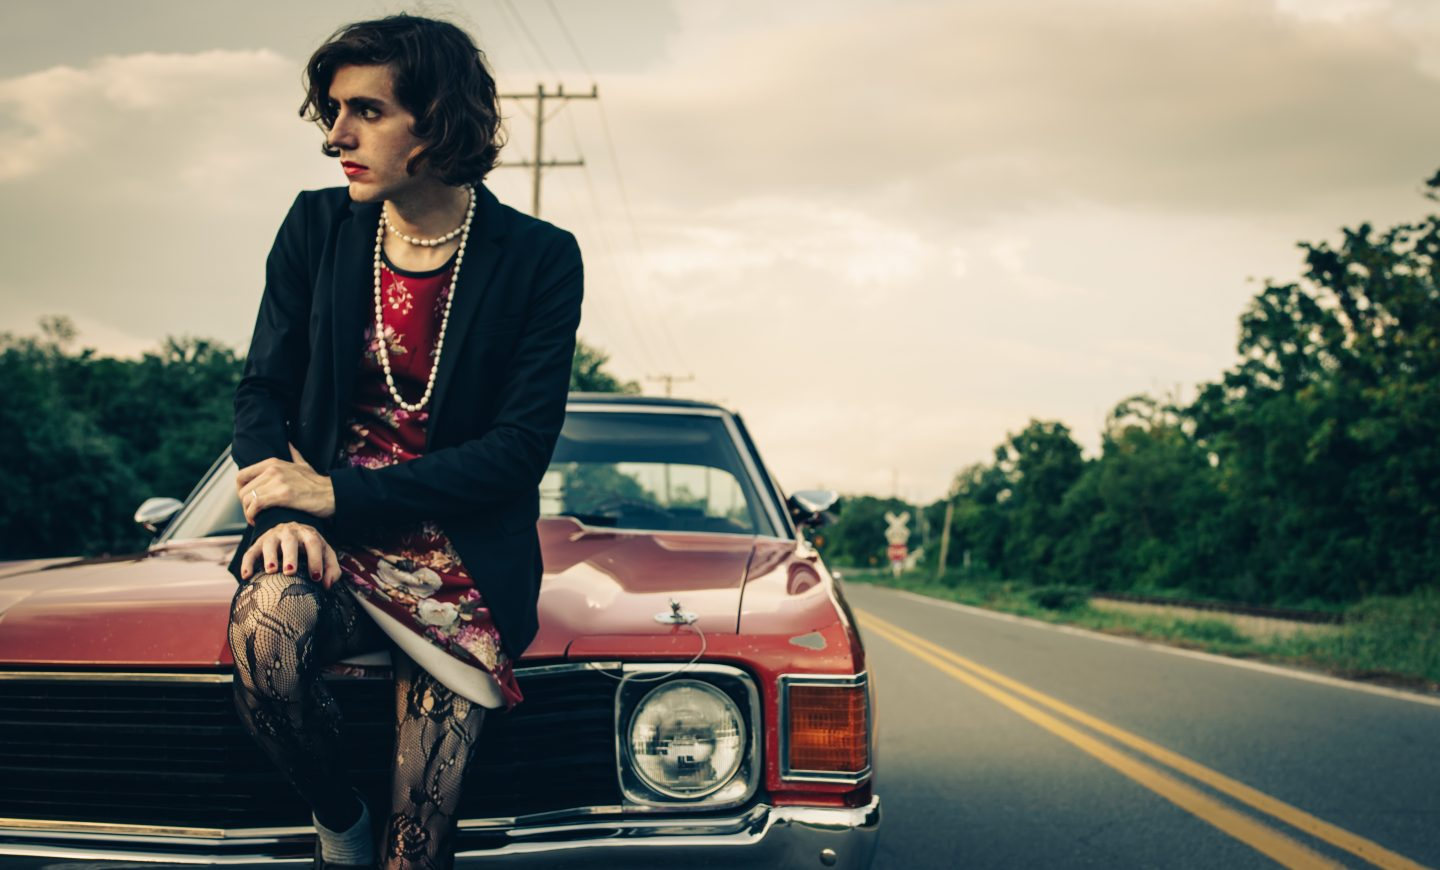 Ezra Furman … more than roadworthy